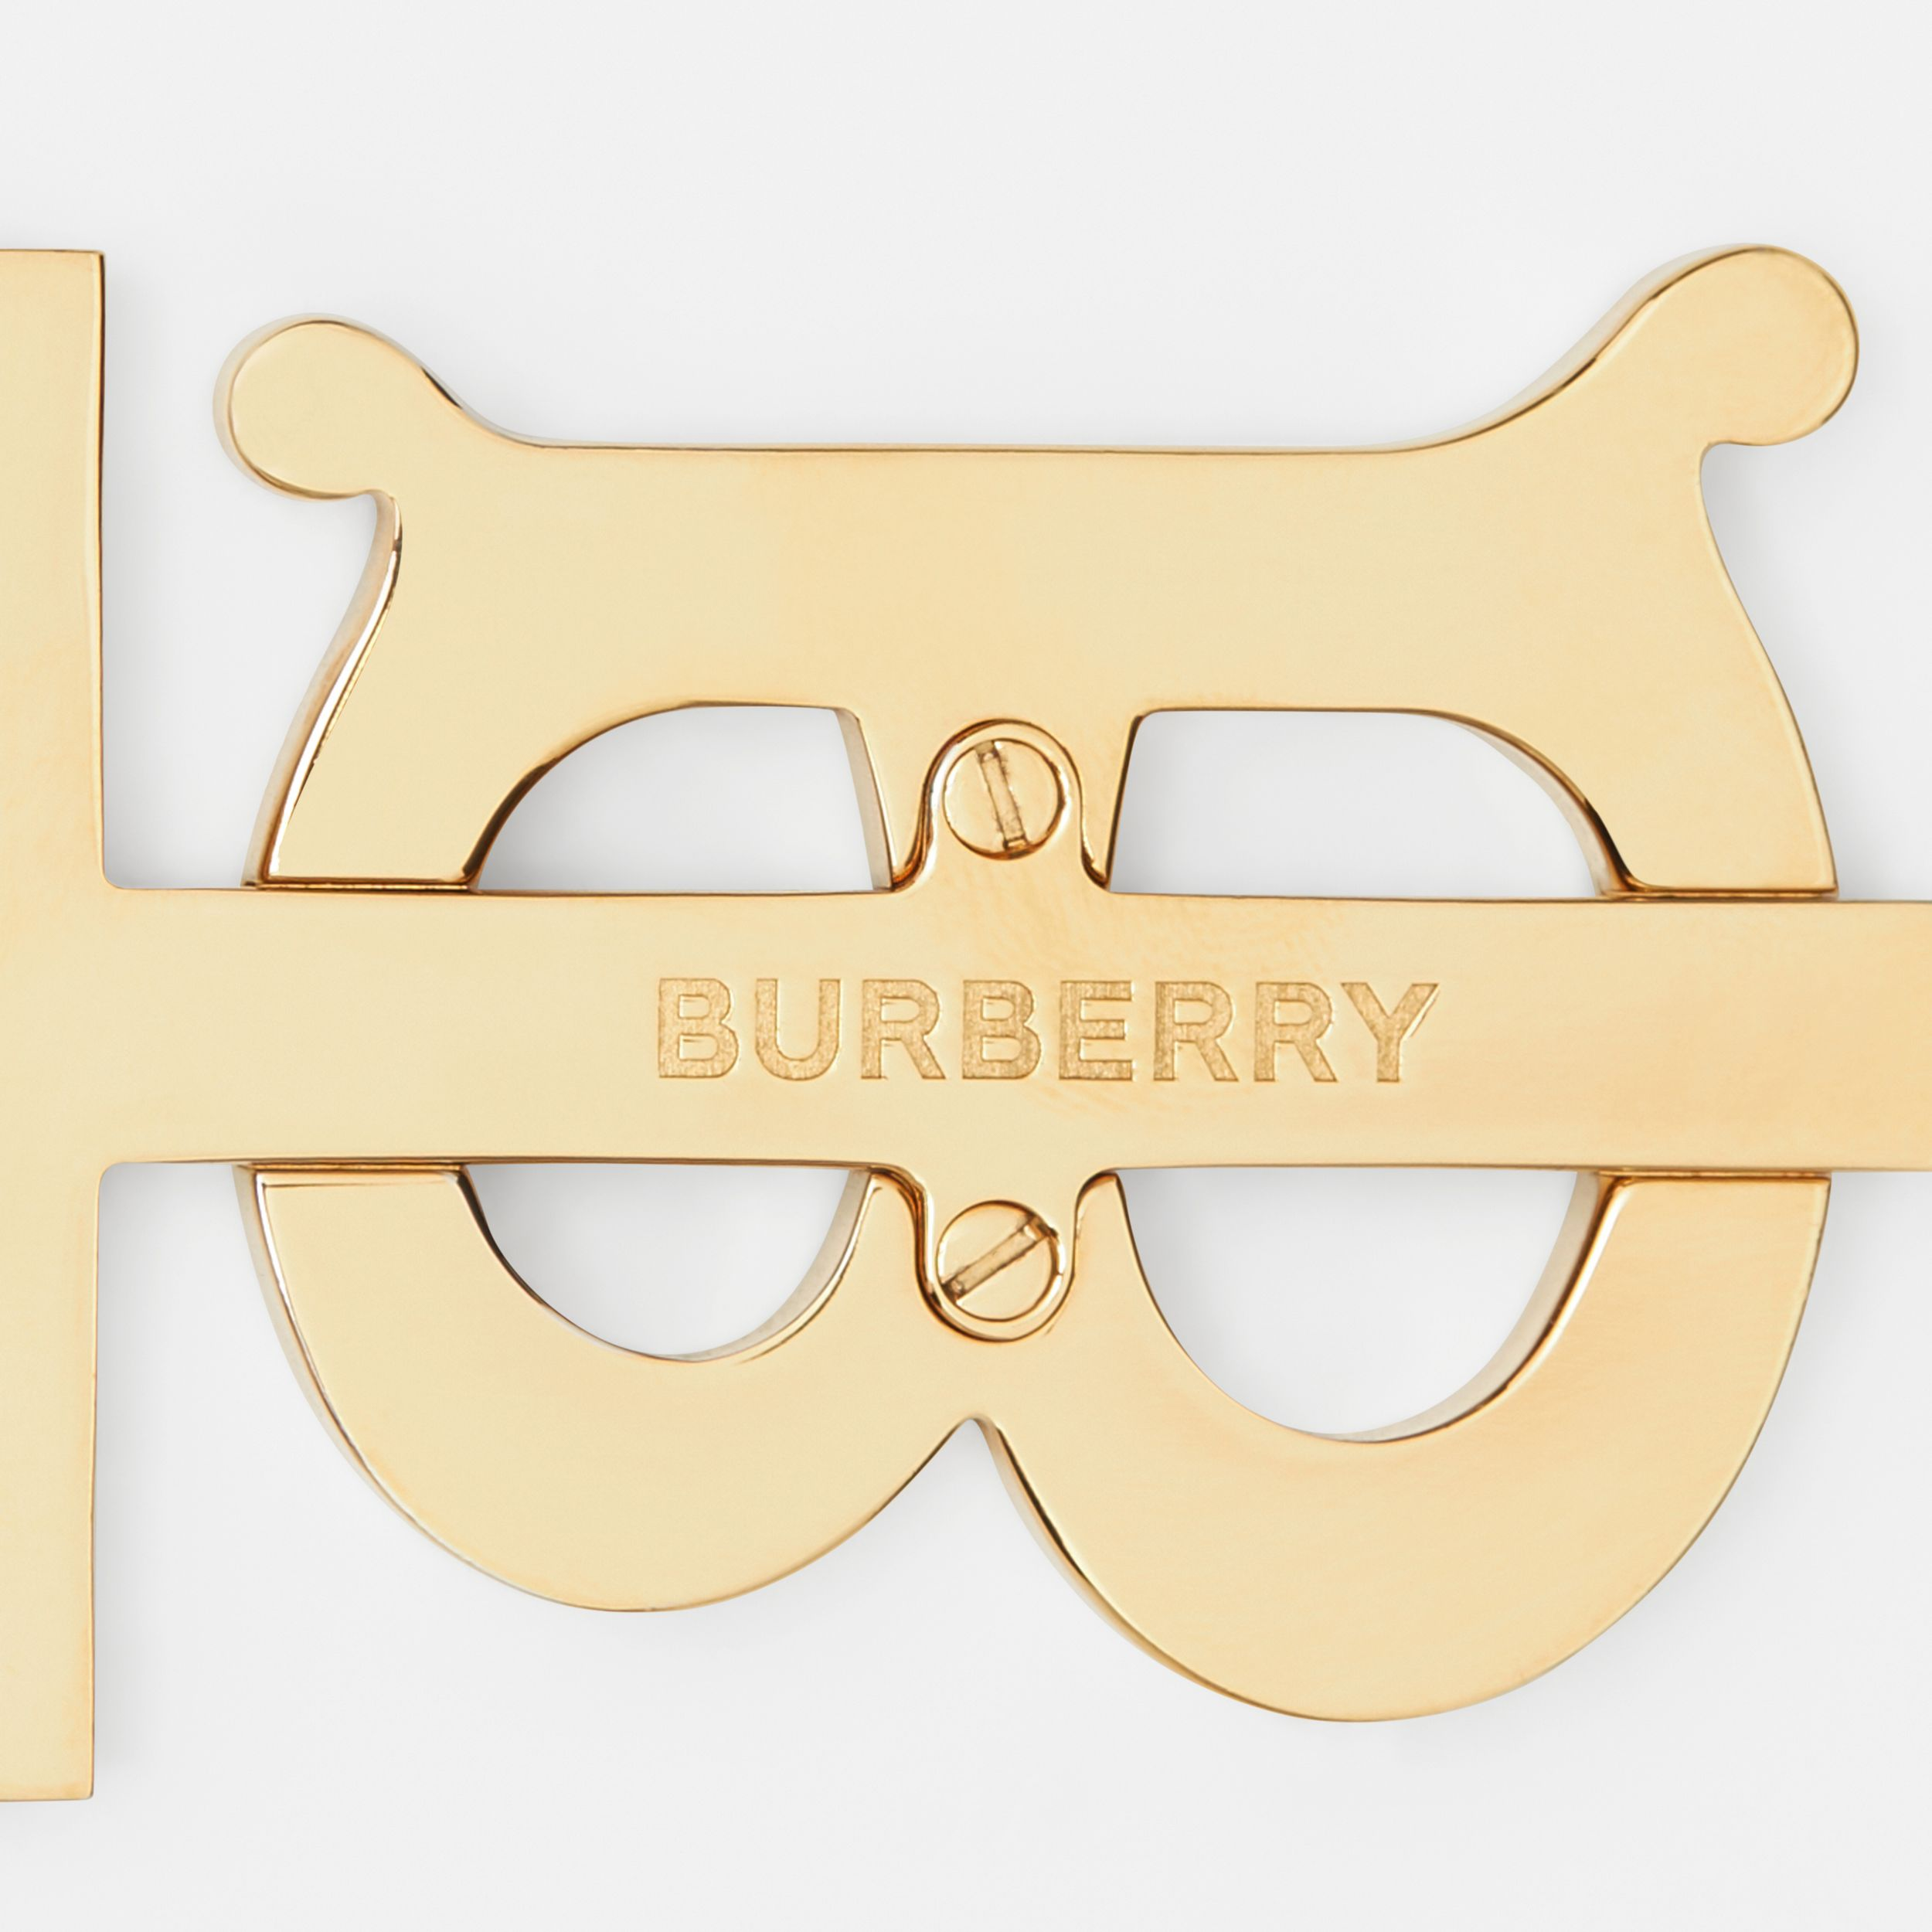 Monogram Motif Gold-plated Key Charm in Black - Women | Burberry - 2